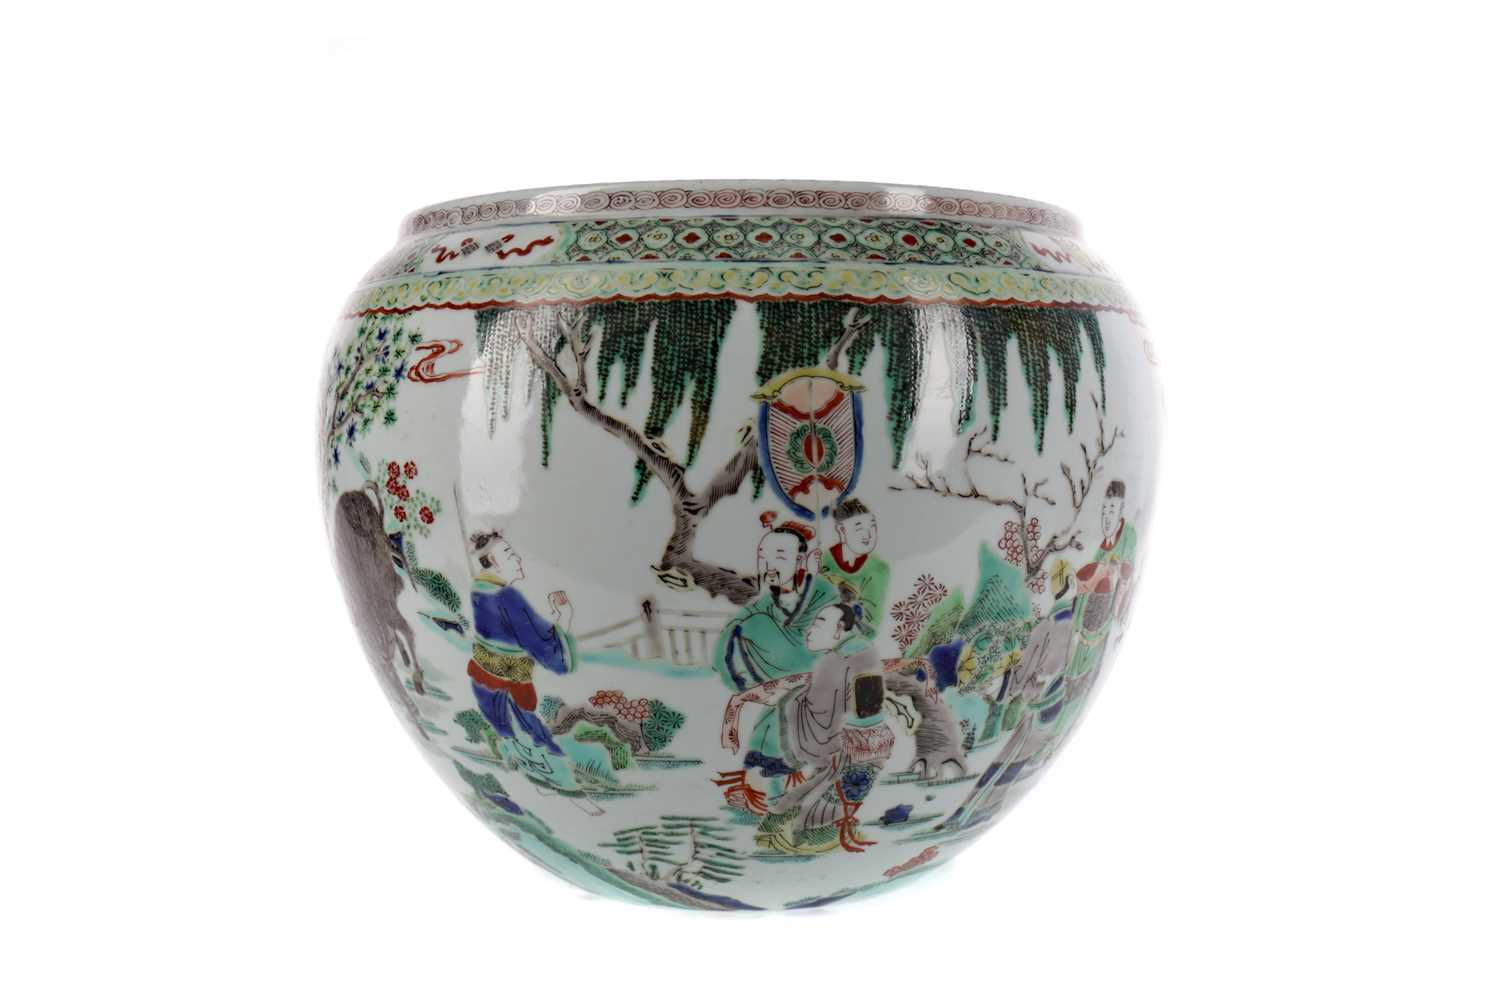 Lot 704 - A CHINESE FAMILLE VERTE PLANTER